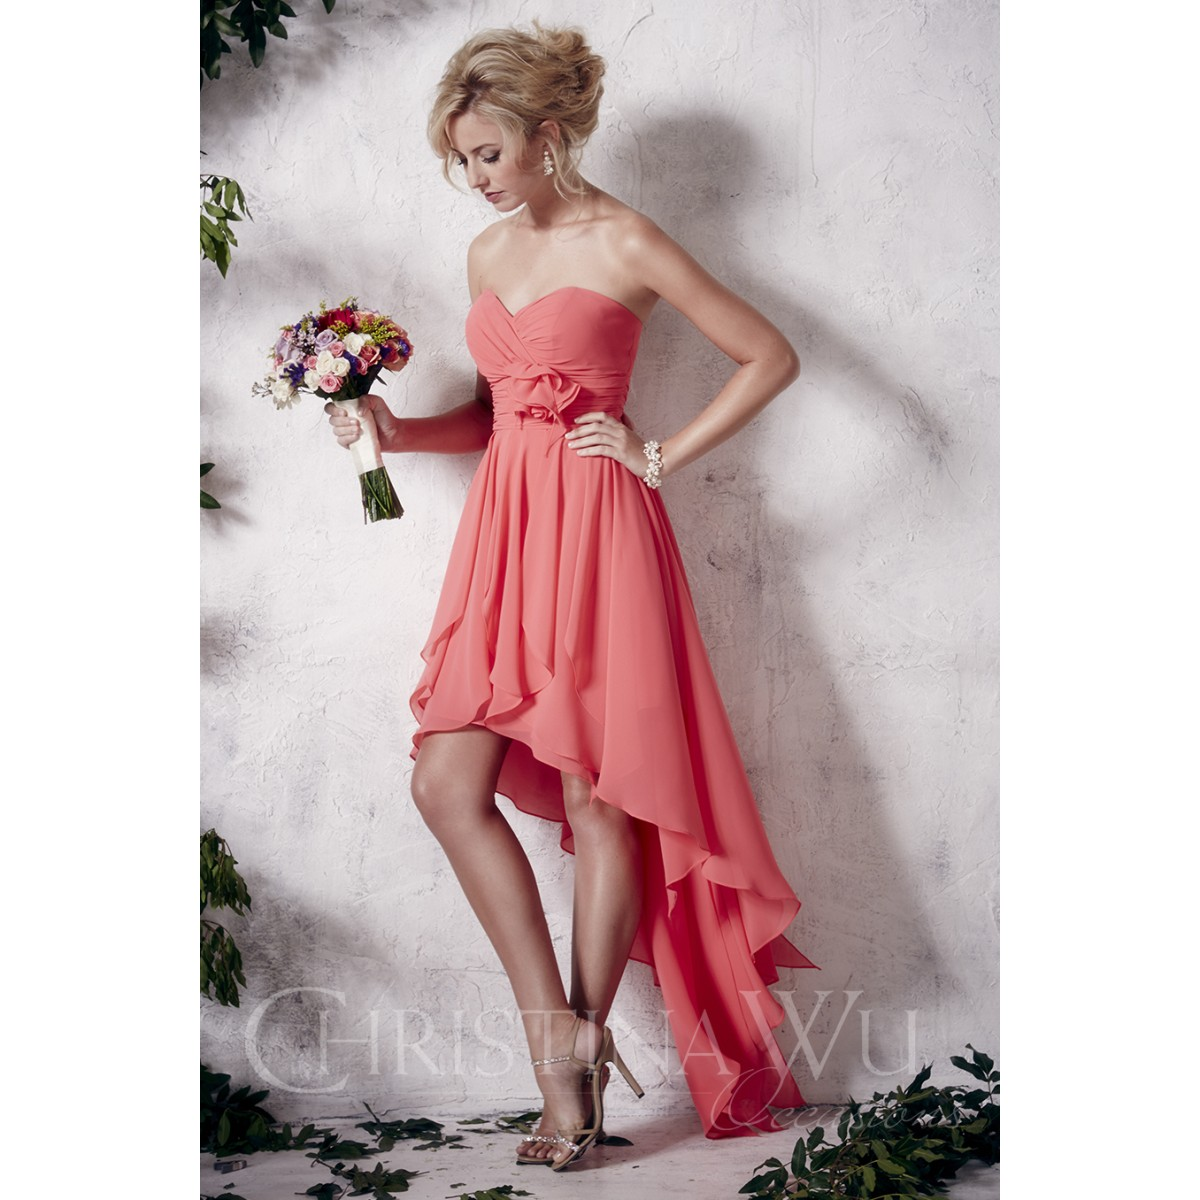 BM053 - $170 - Strapless chiffon hi-low dress with empire waist by ...